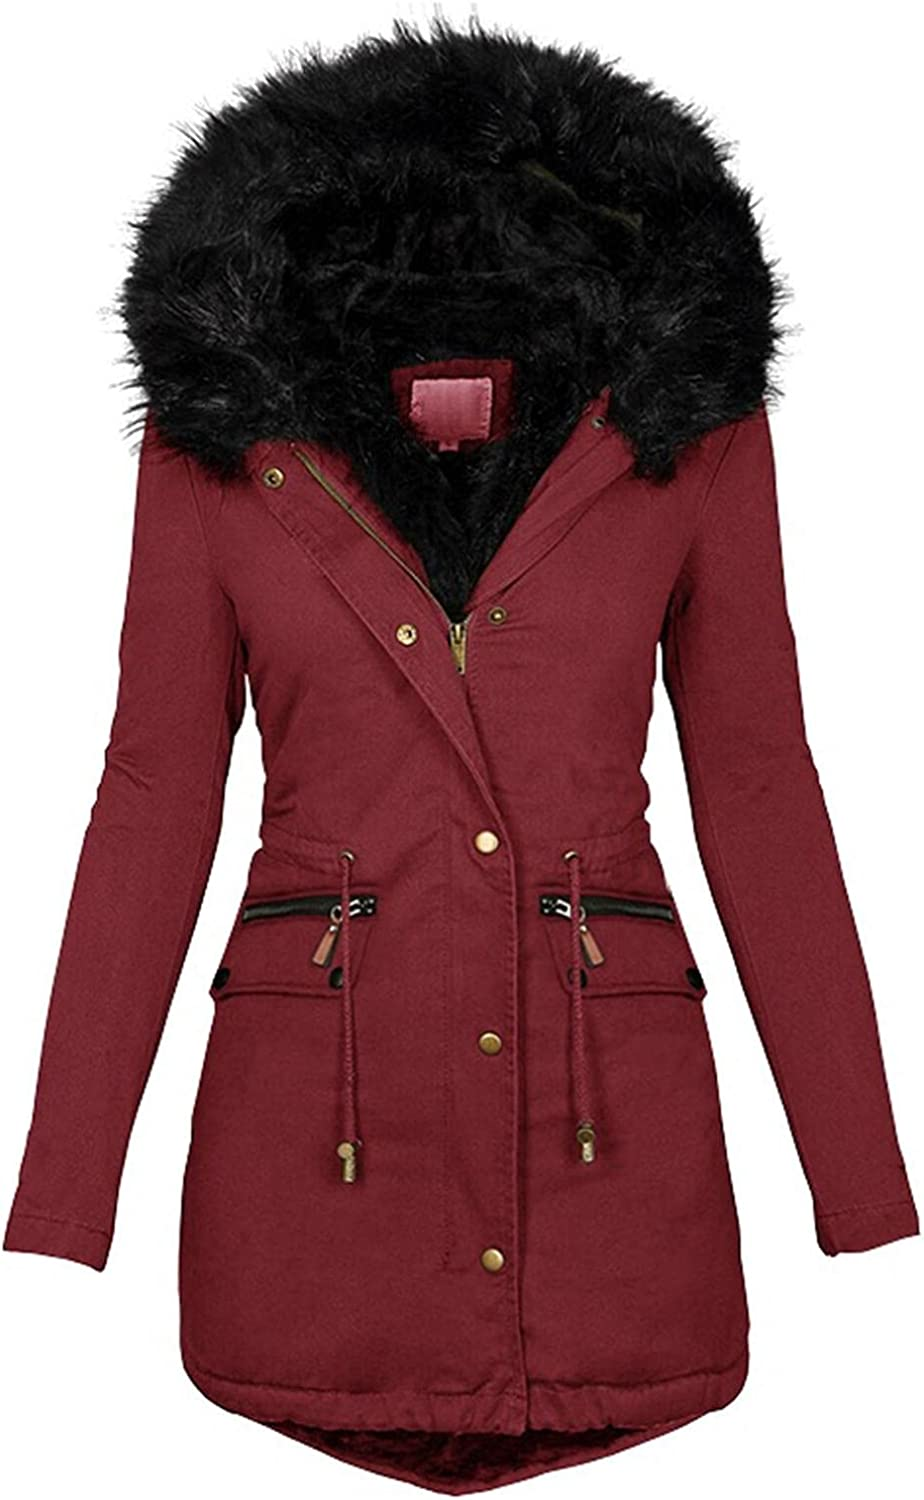 MASZONE Winter Coat Max 57% OFF for Women Sale SALE% OFF Warm Sleeve Long Casual Hooded Den